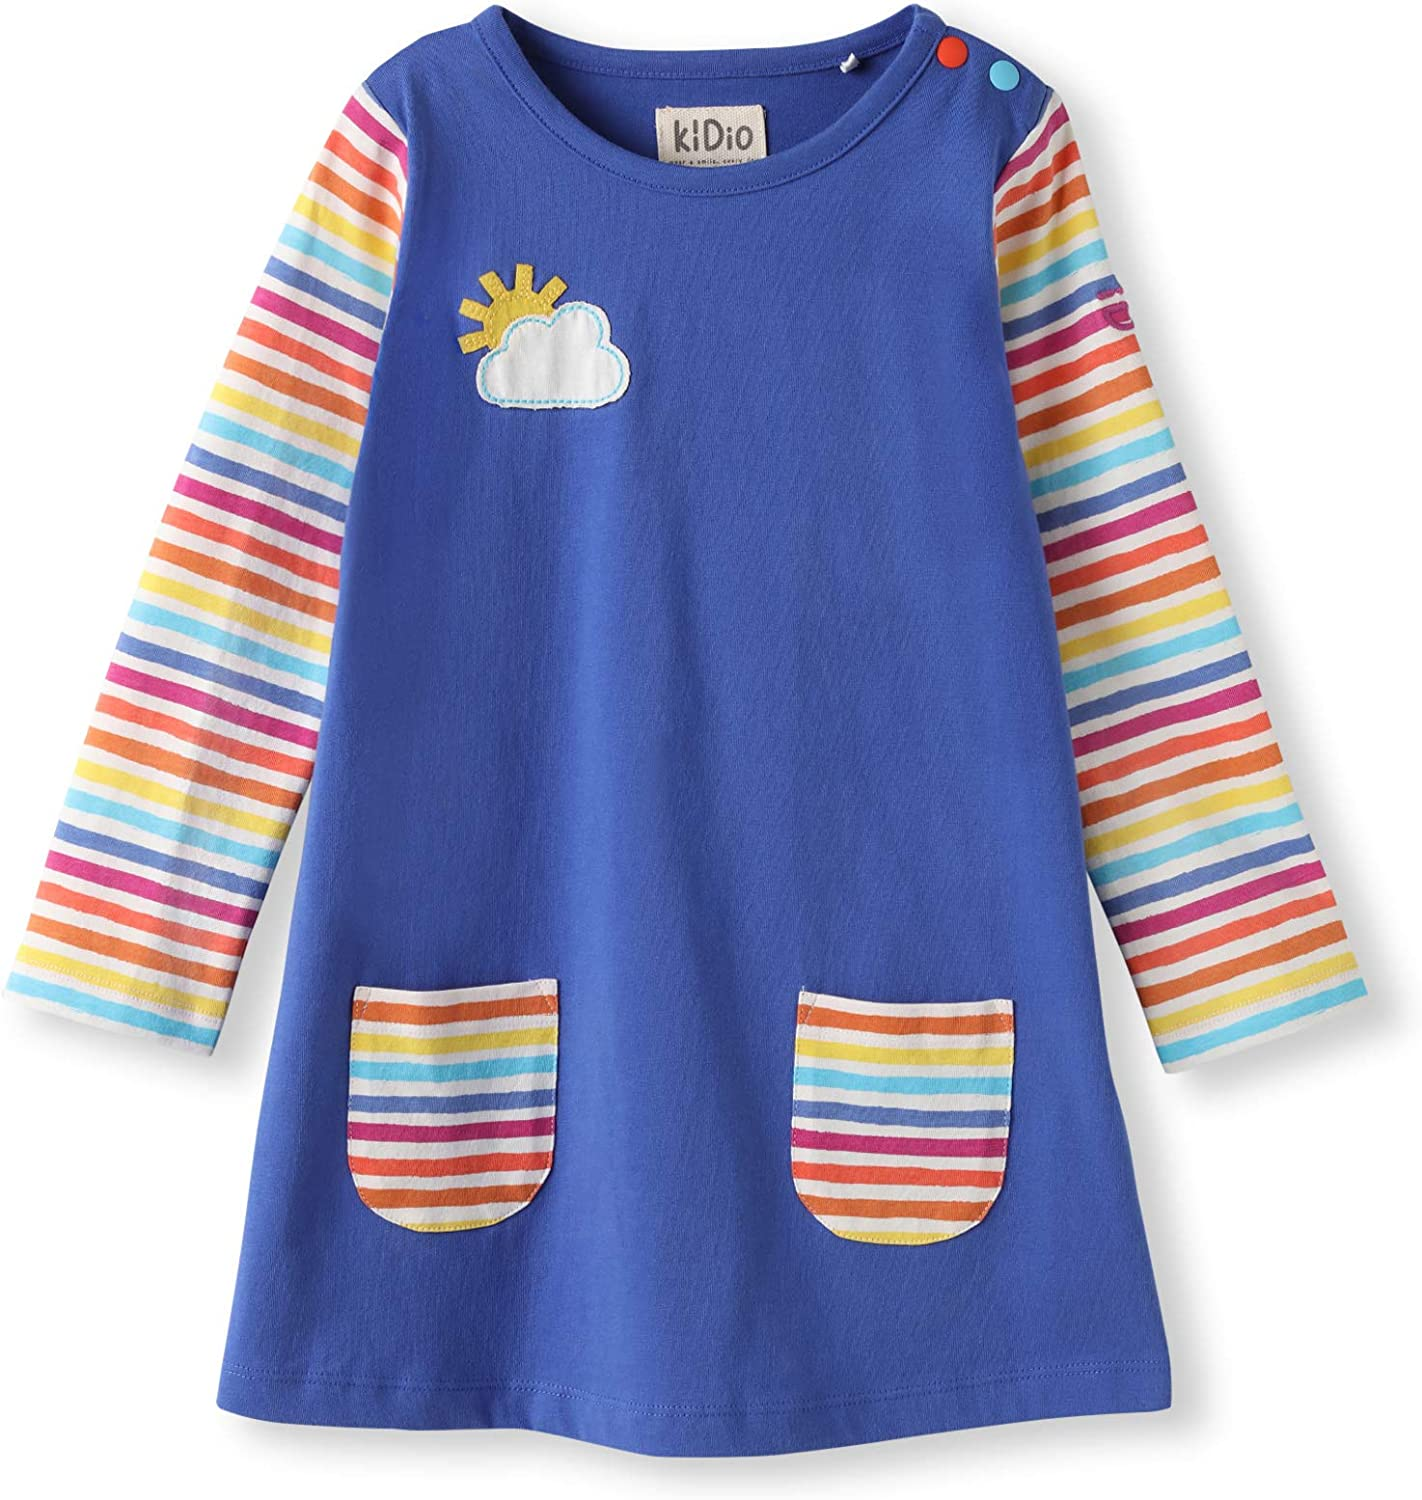 Limited time sale Organic Cotton Applique Baby Infant Toddler Long Sl Credence - Dress Girl